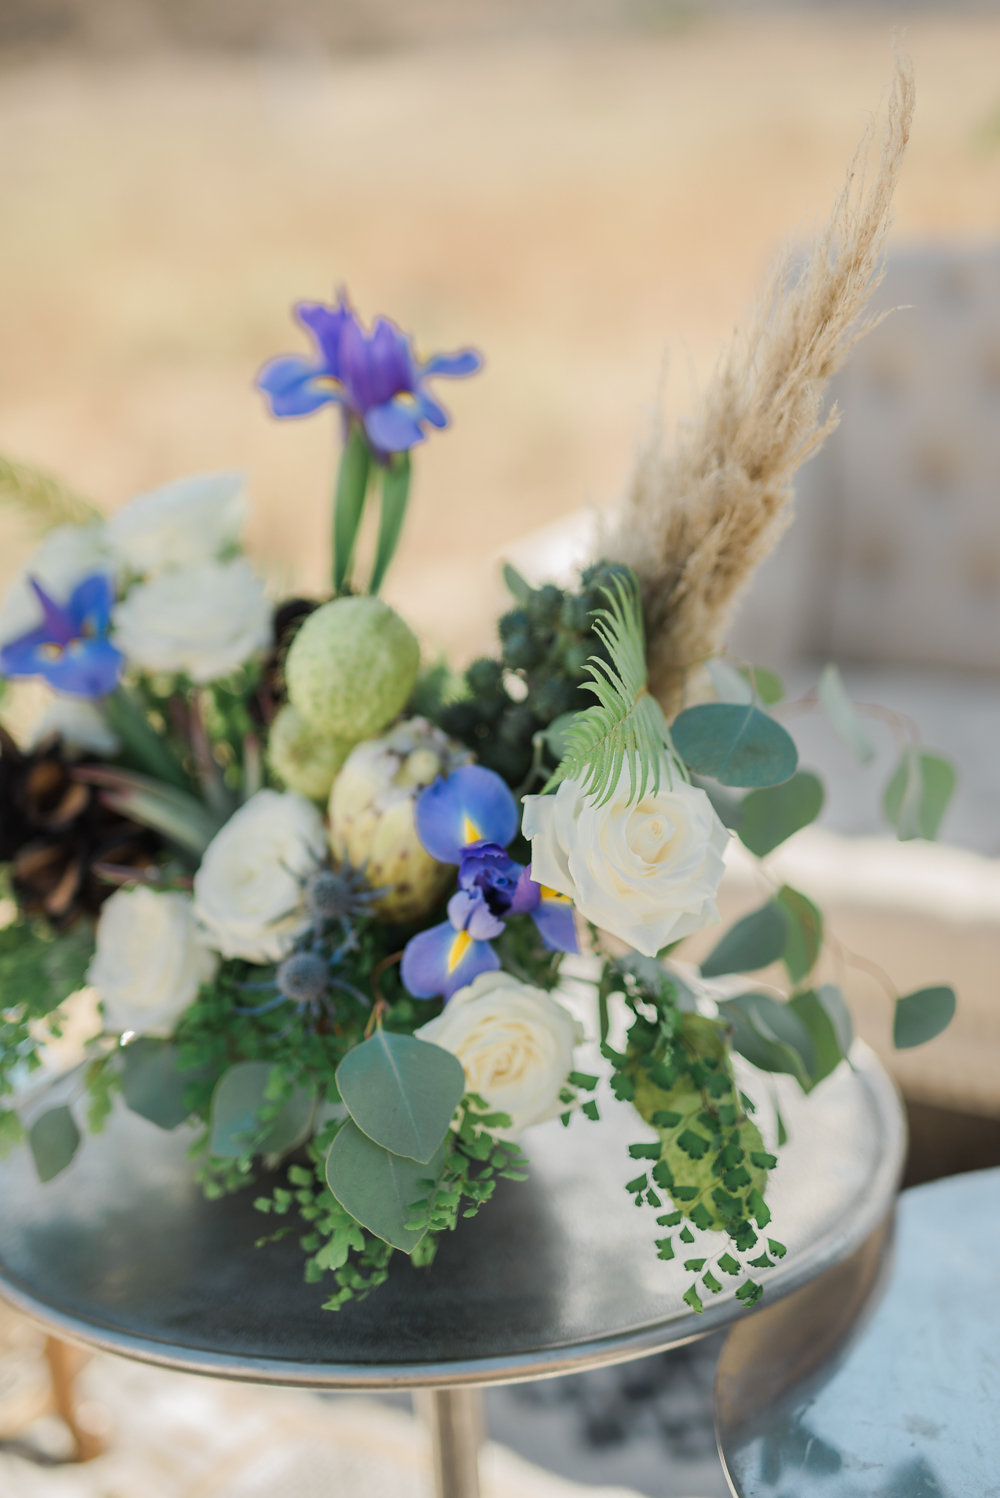 wedding flower centerpieces - photo by Anya Kernes Photography http://ruffledblog.com/organic-wedding-inspiration-with-shades-of-blue